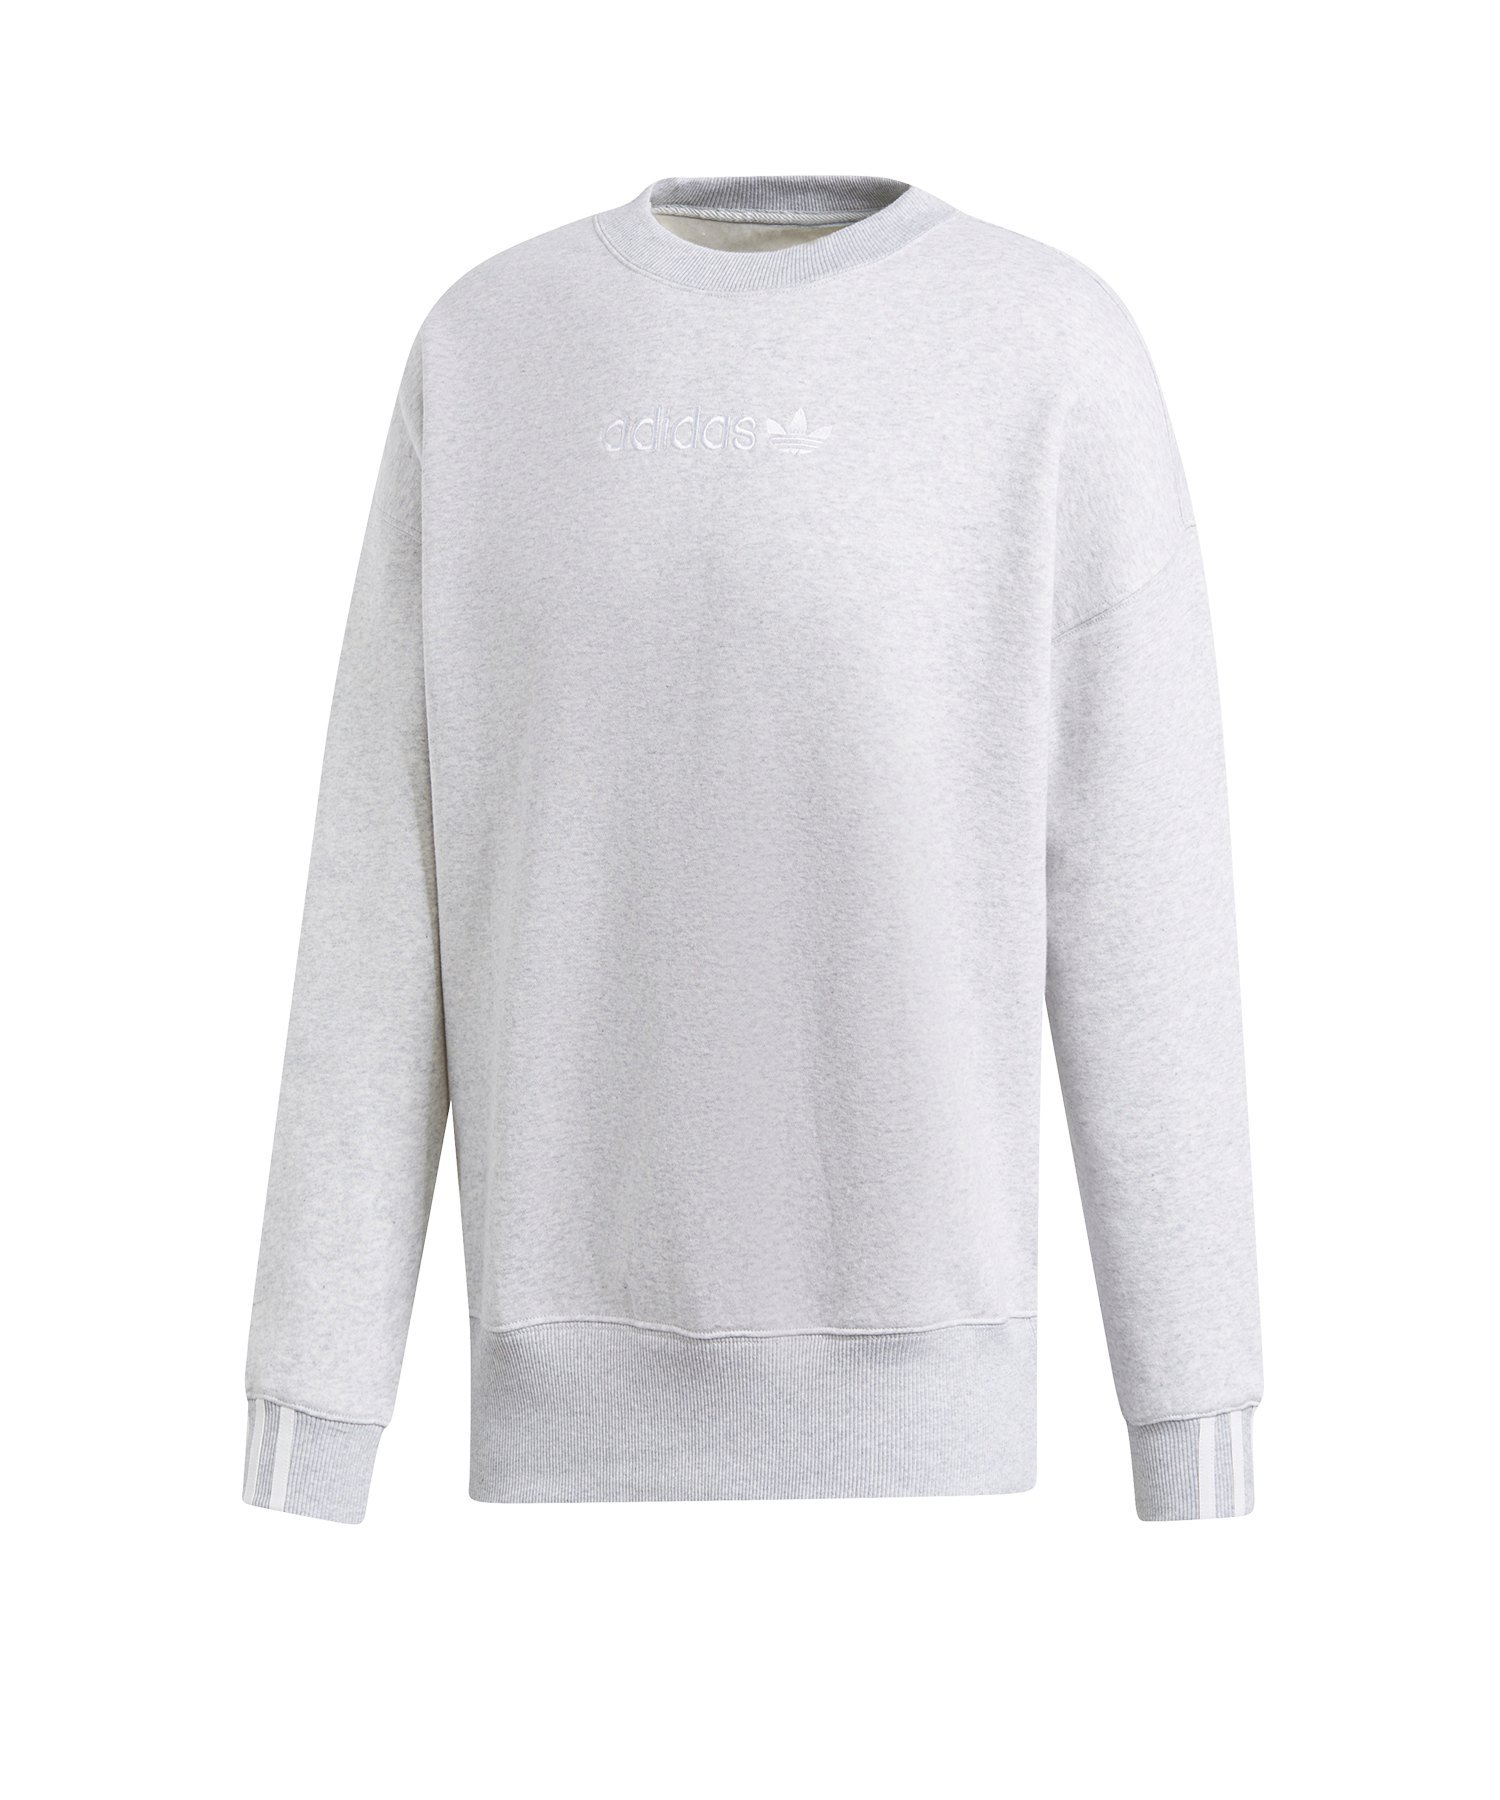 adidas Originals Coeeze Sweatshirt Damen Grau